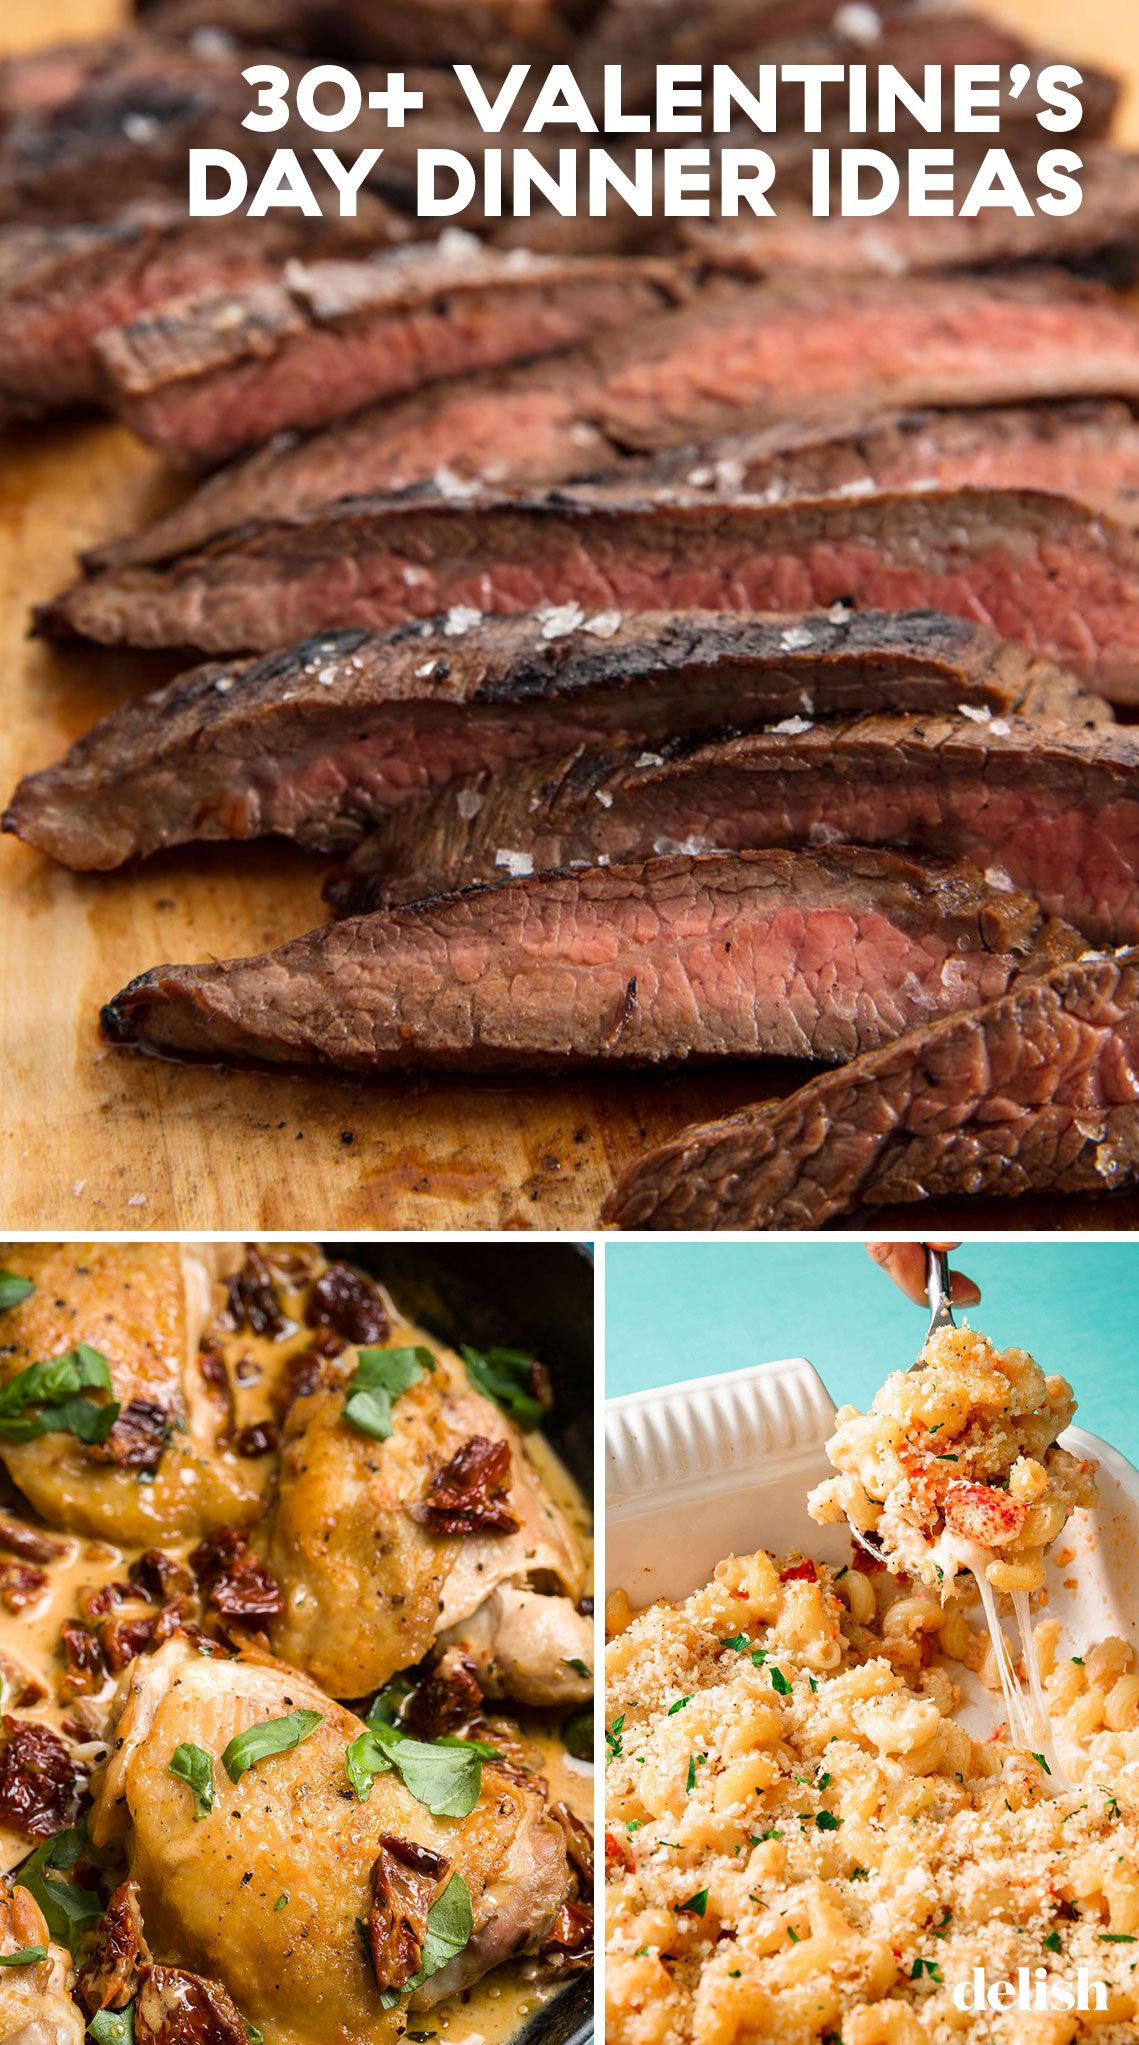 40 Easy Romantic Valentine's Day Dinner Ideas for Two - Best Valentine's  Day Meal Recipes